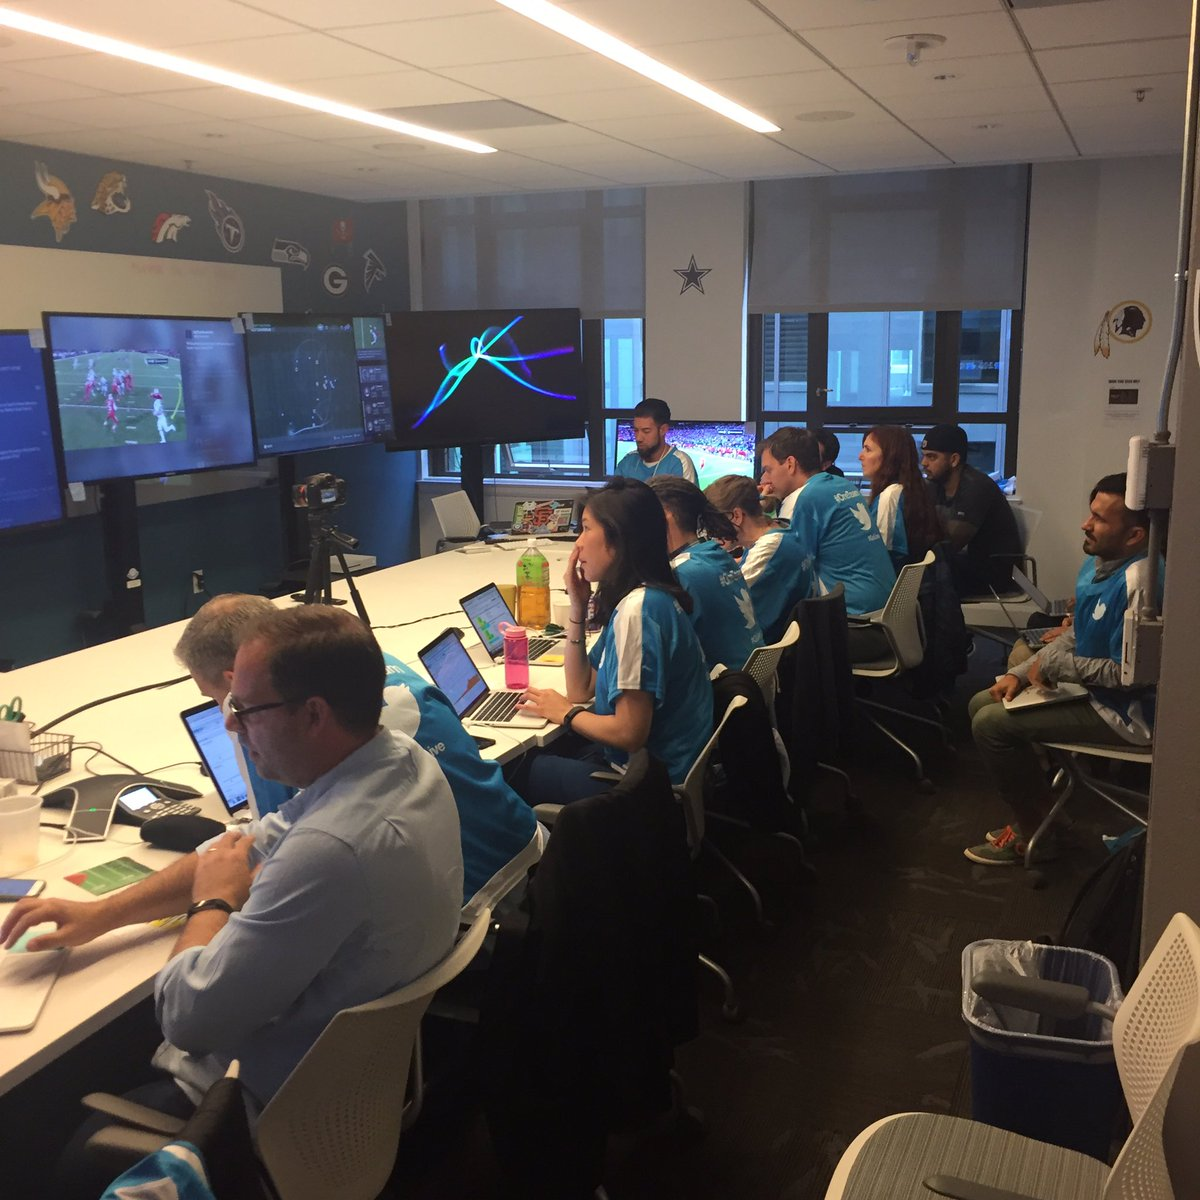 Our bunker room @twitter we have unbelievable team❗️#golive #TNF #OneTeam https://t.co/0W1PgXcfrH